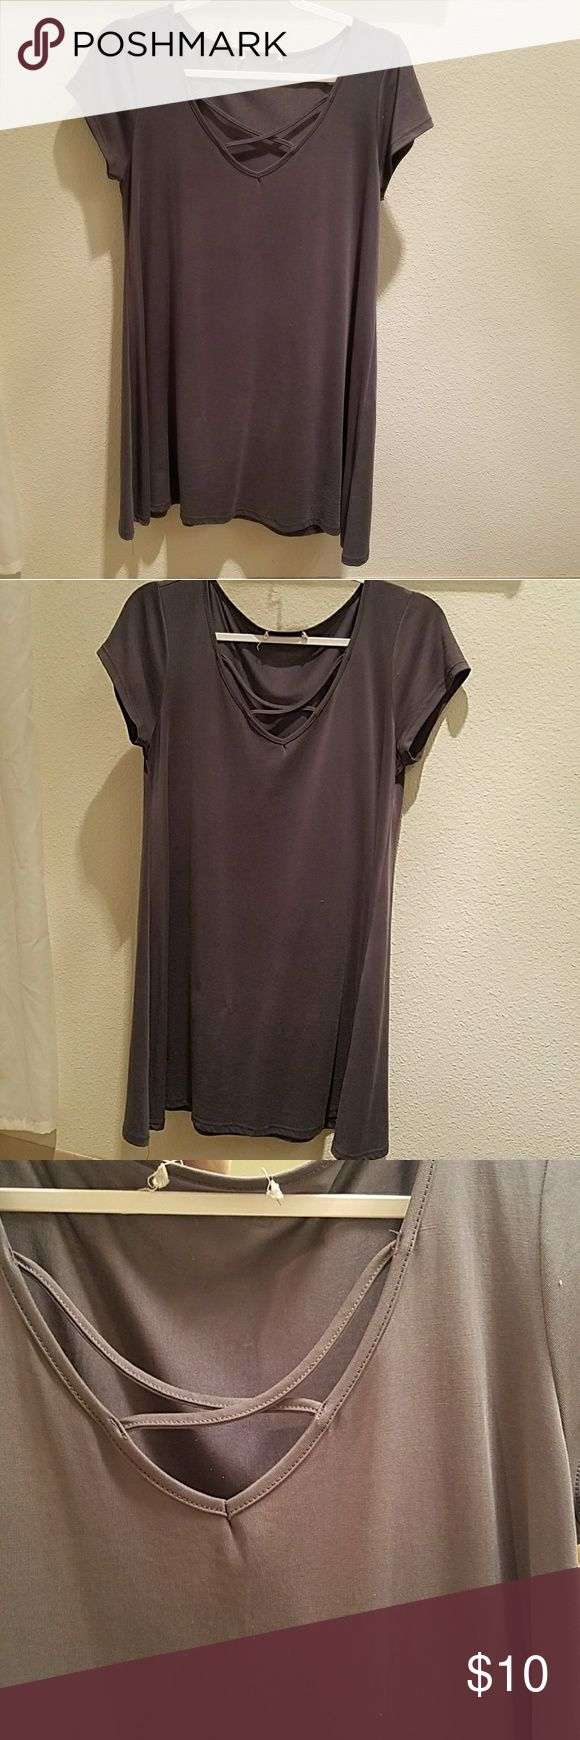 Grey short sleeve short dress/long shirt Grey short dress, hits about mid-thigh. No tag but it is a size small. Criss cross design in v-neck. Super cute and comfortable! Dresses Mini